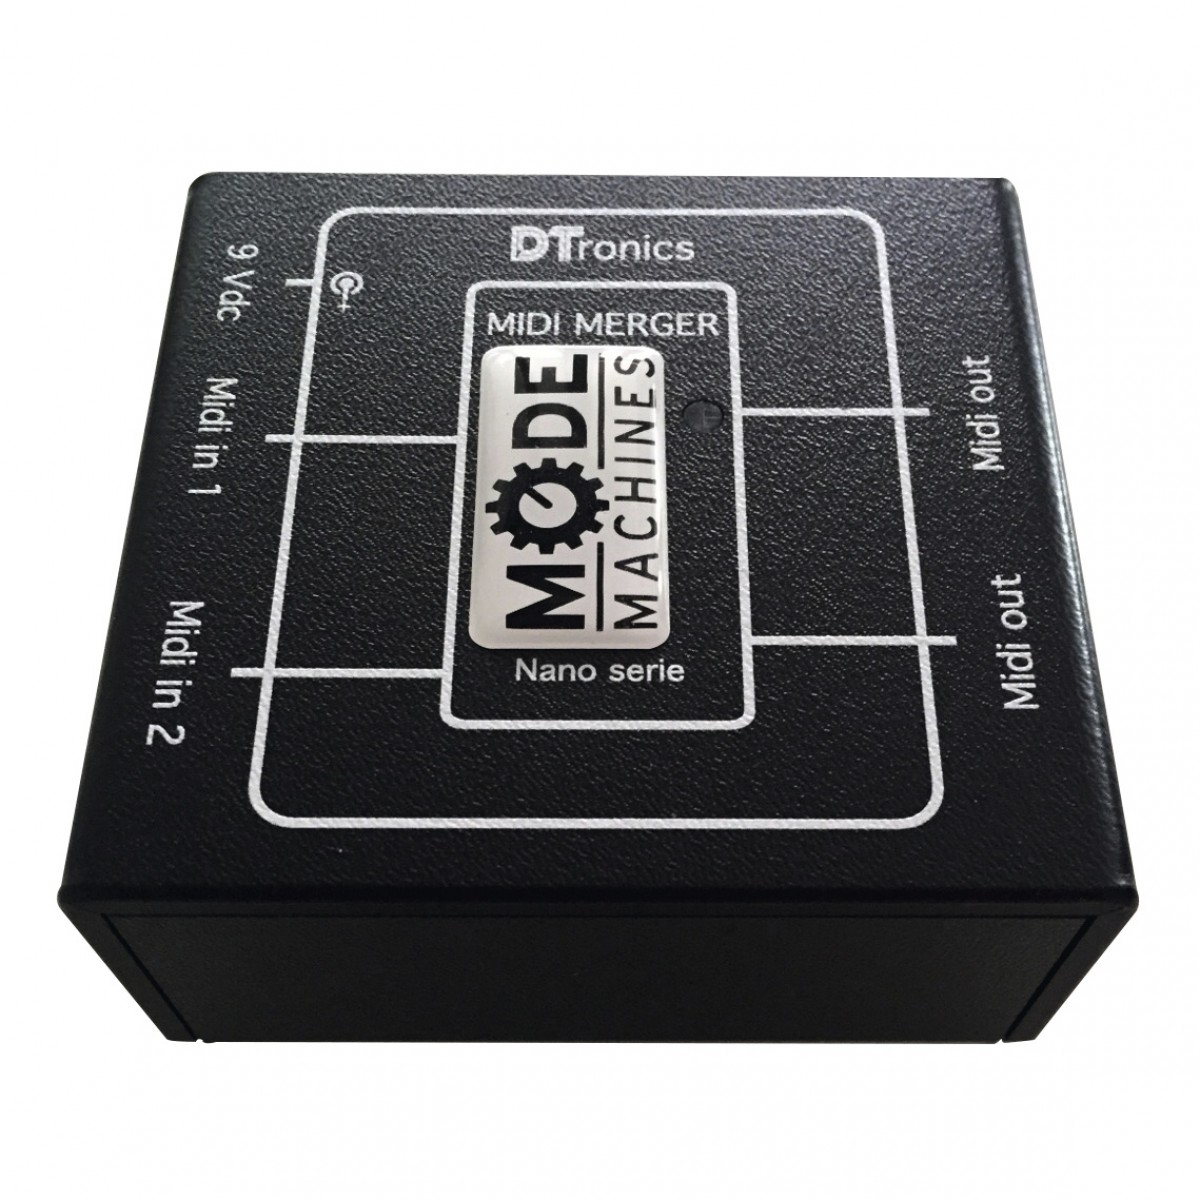 MM_NANO_MIDI_MERGER_product_view2